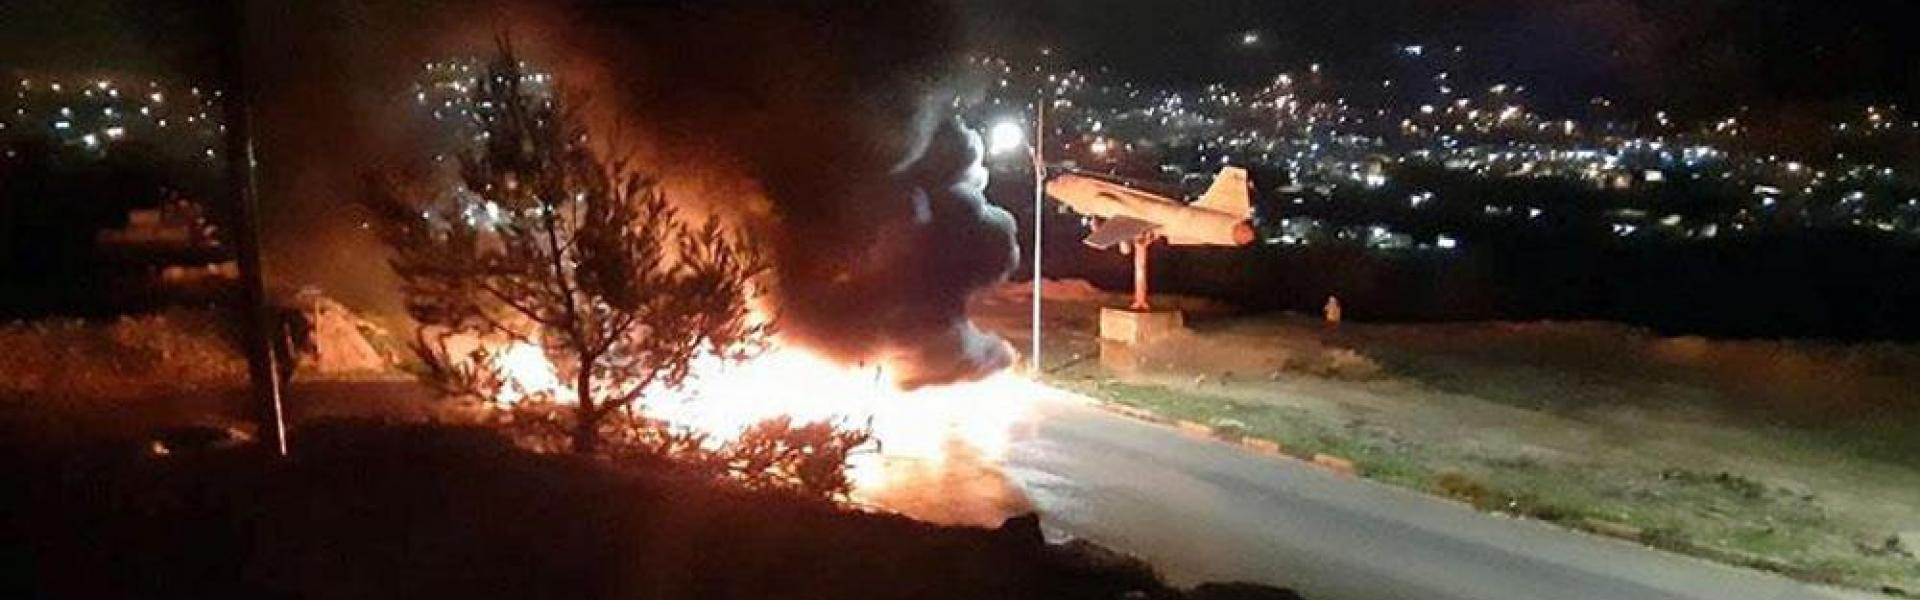 The group also torched a government vehicle